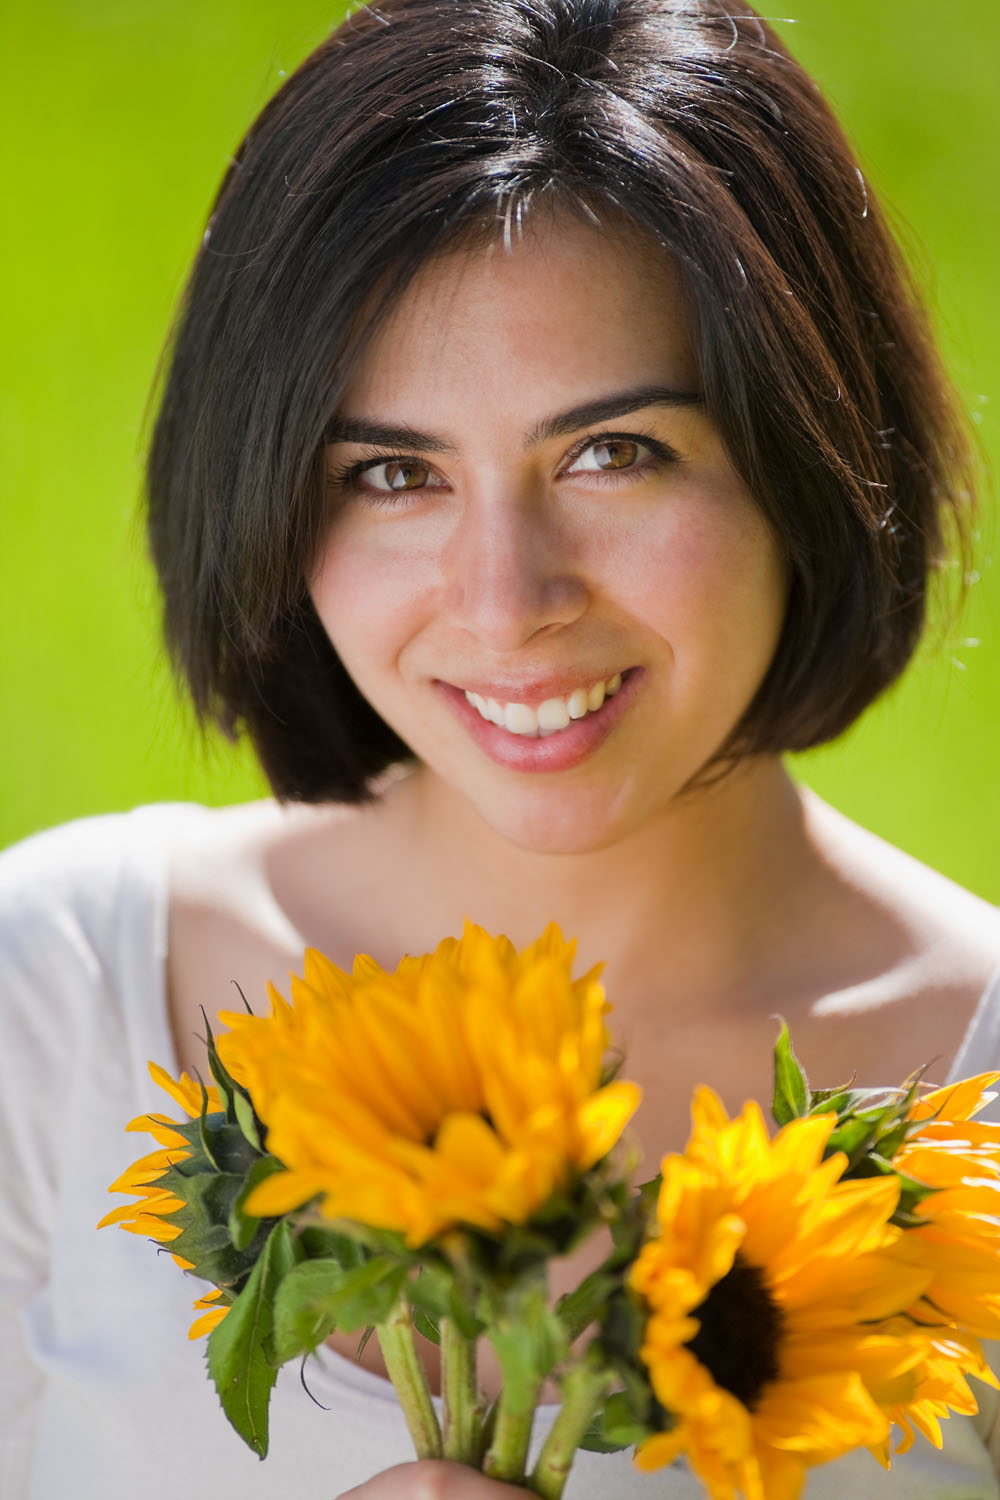 Portrait of young Hispanic woman with flowers